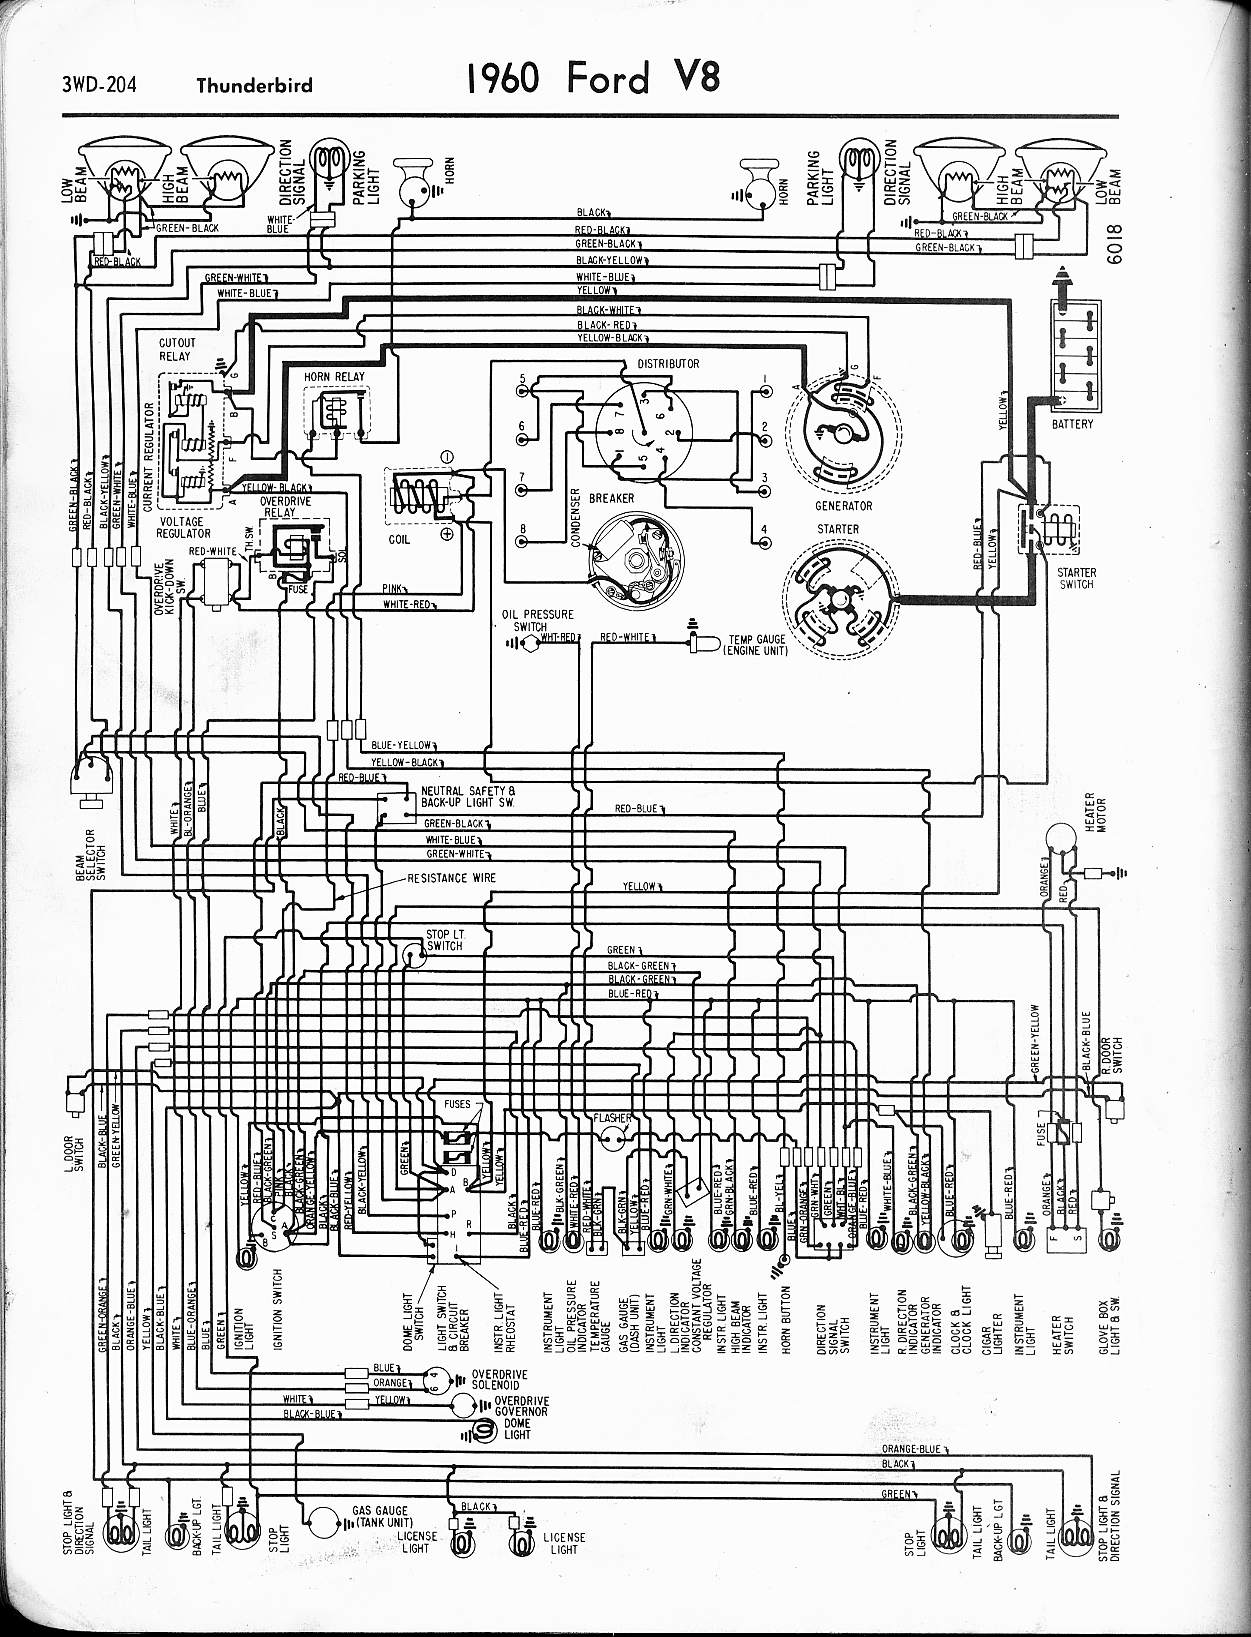 1970 ford torino ignition wiring diagram wiring diagram megaford torino ignition wiring diagrams schematic diagram 1970 ford torino ignition wiring diagram